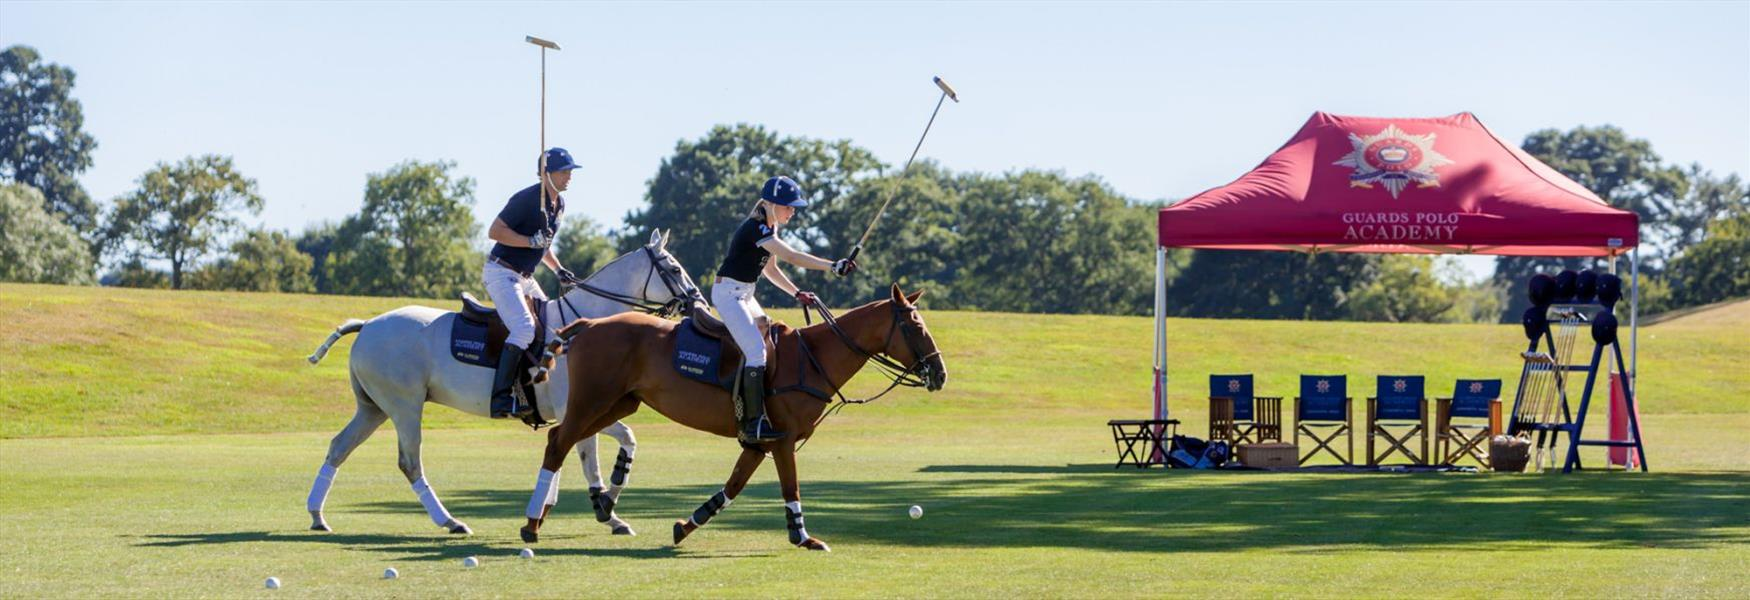 Learning to play Polo at Coworth Park